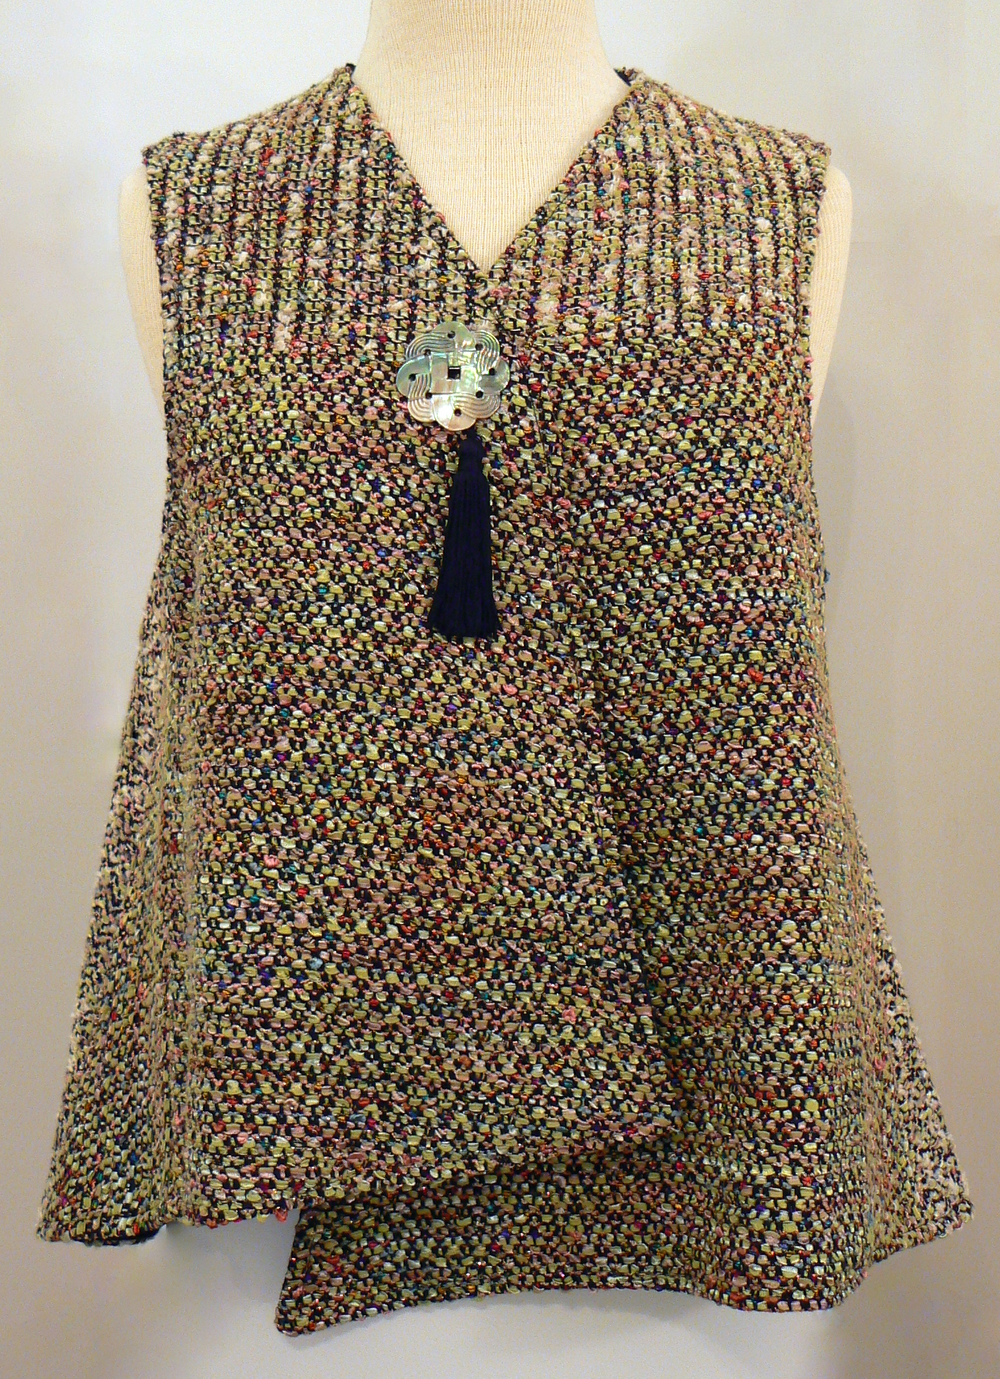 Handwoven Clothing, Vest, Kathleen Weir-West, 10-001.JPG